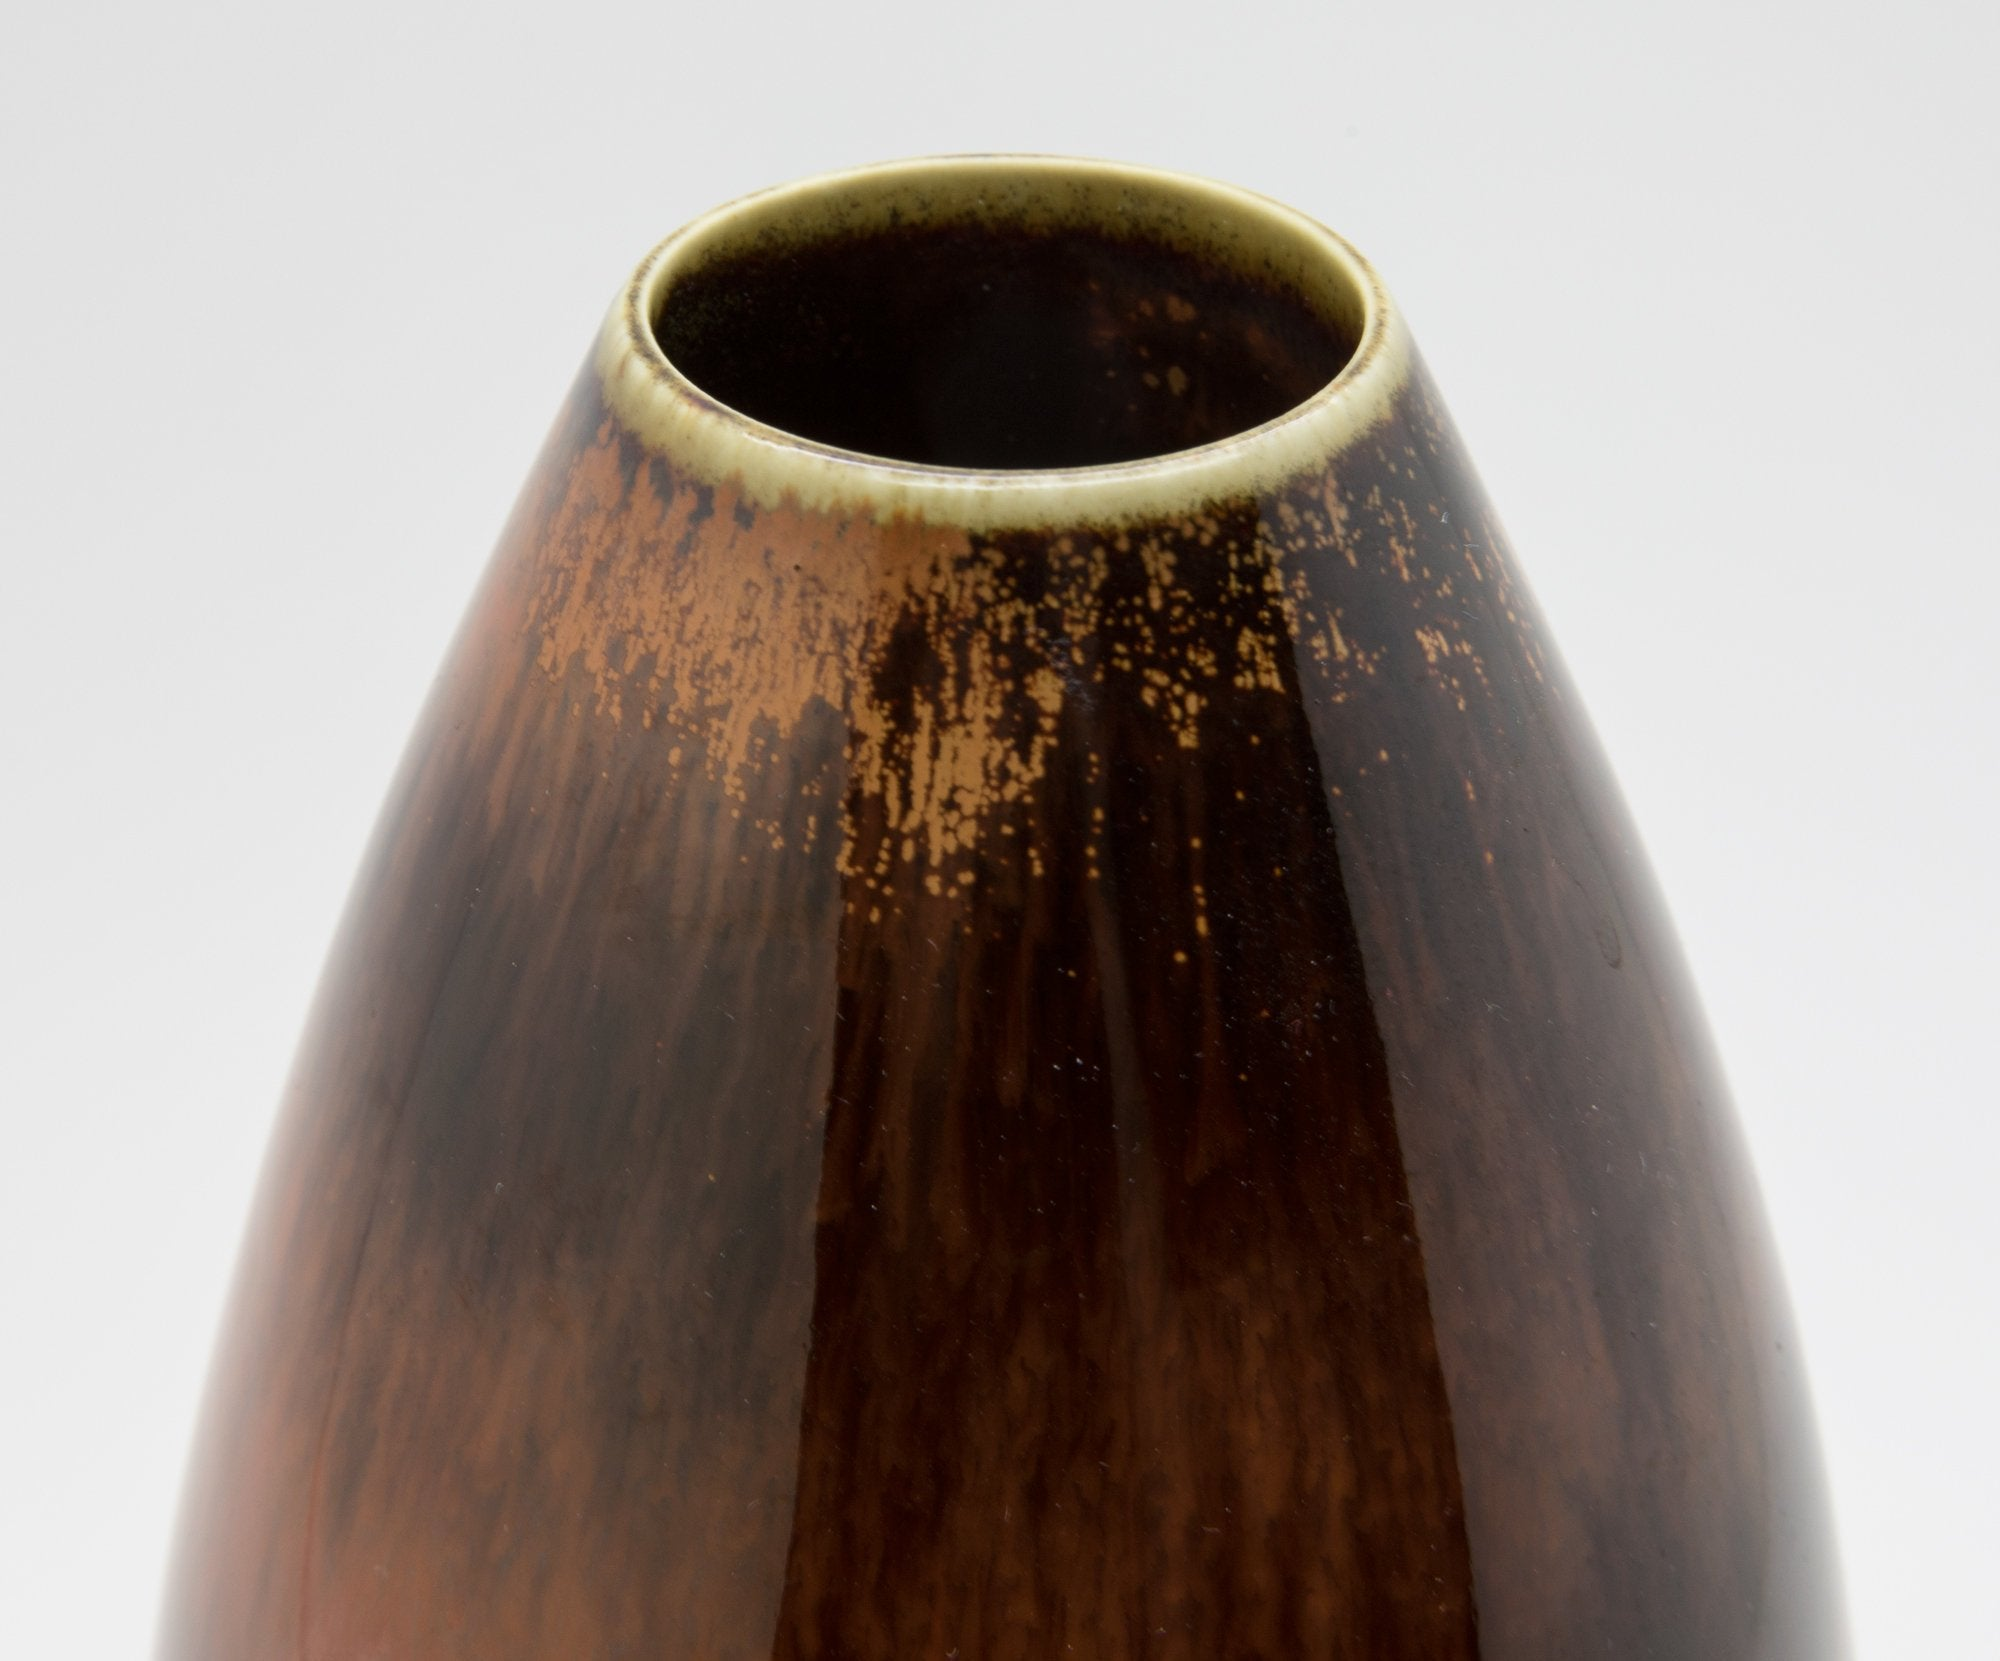 Rörstrand CARL HARRY STÅLHANE Brown Orange Glazed Stoneware Vase - Mollaris.com